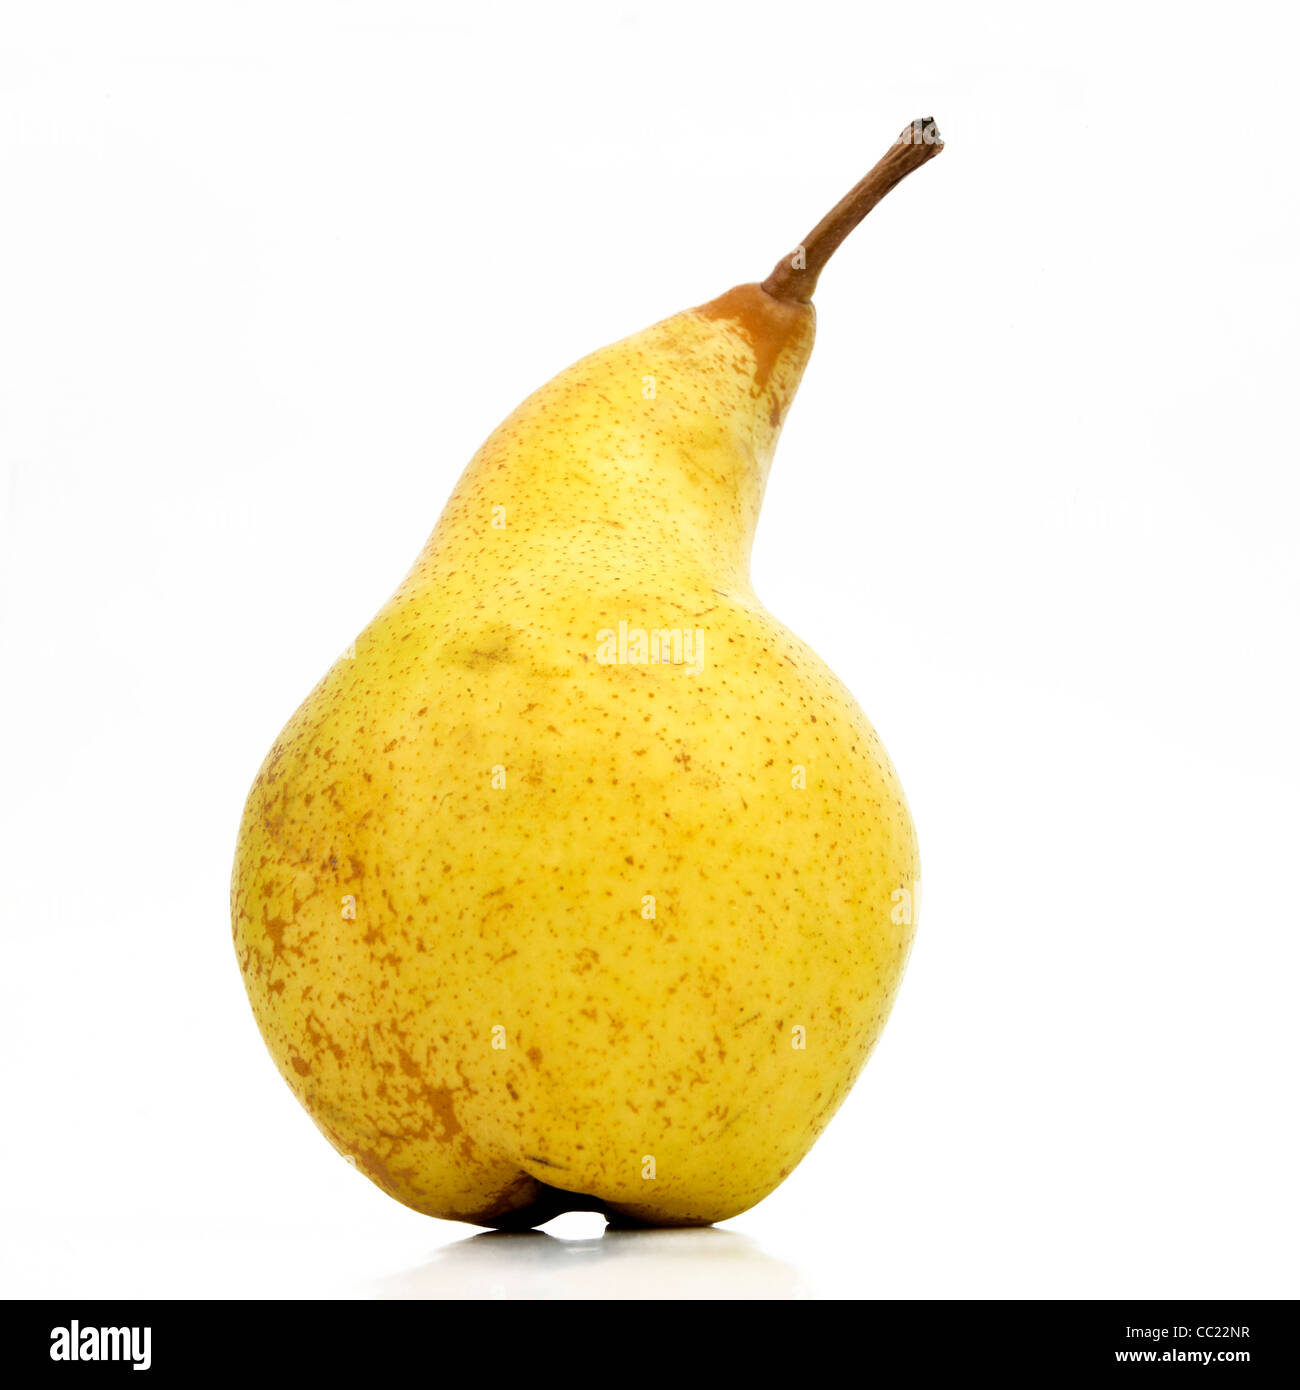 Pear - Stock Image